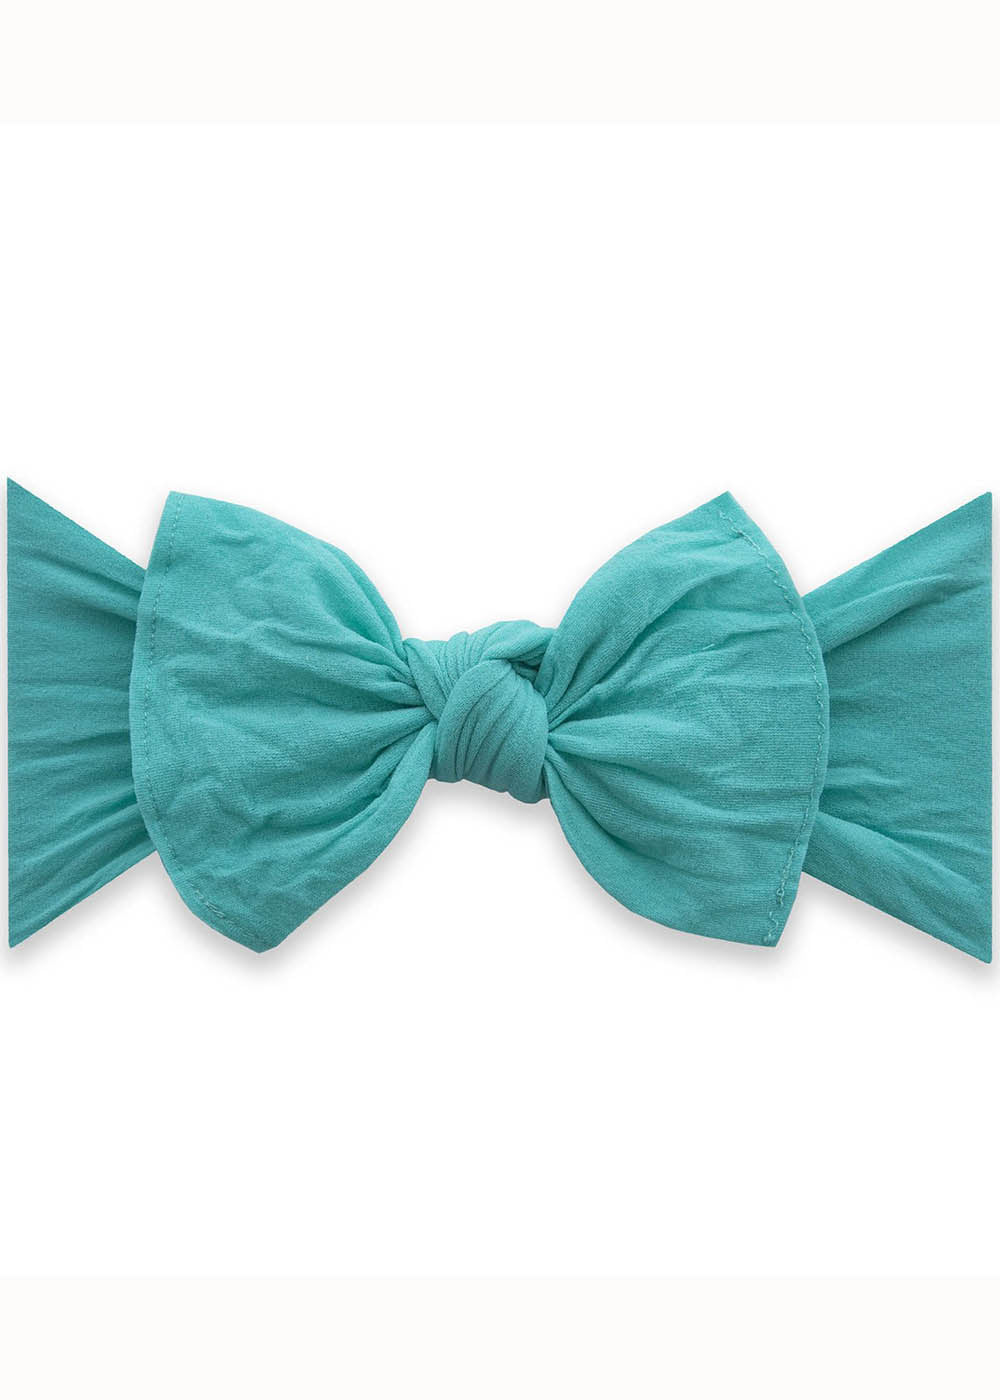 Baby Bling - Turquoise